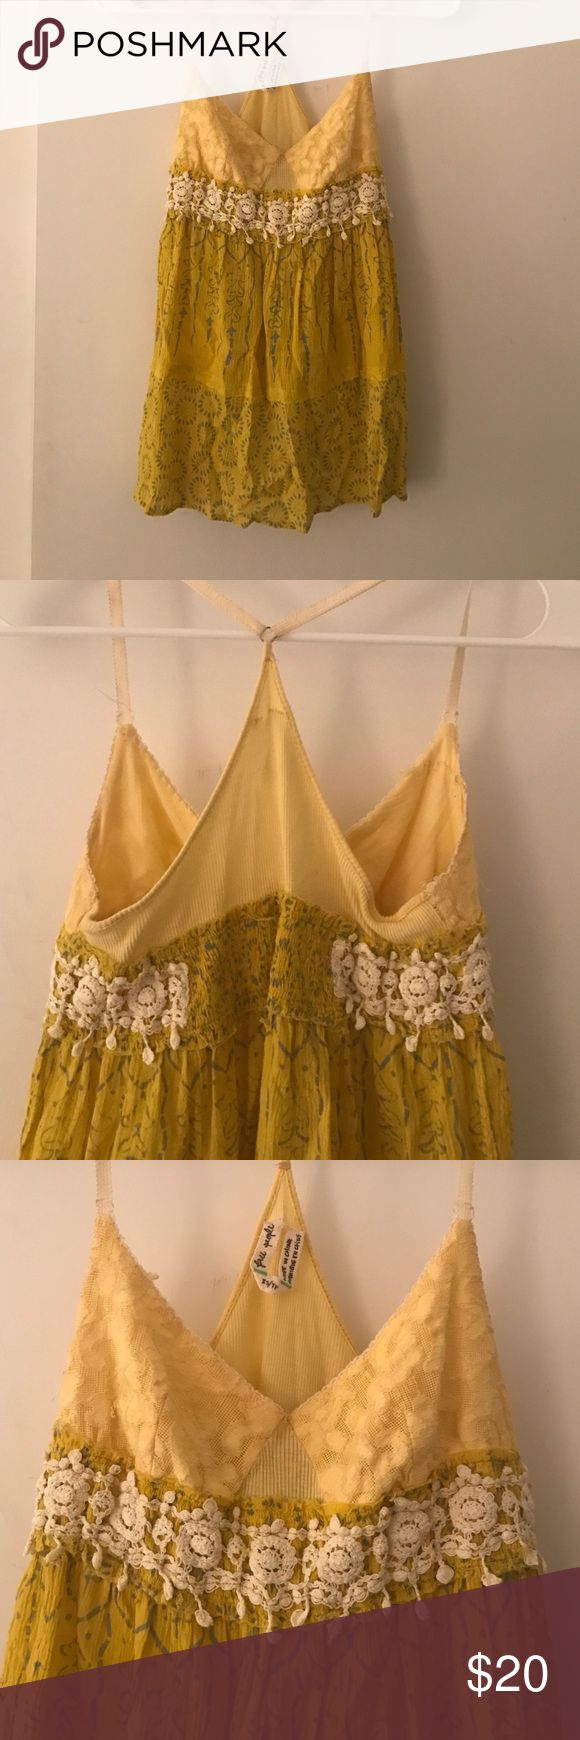 FREE PEOPLE: boho tank Gorgeous free people bohemian tank top in yellow with crochet detail around bust! Adjustable spaghetti straps! Free People Tops Tank Tops